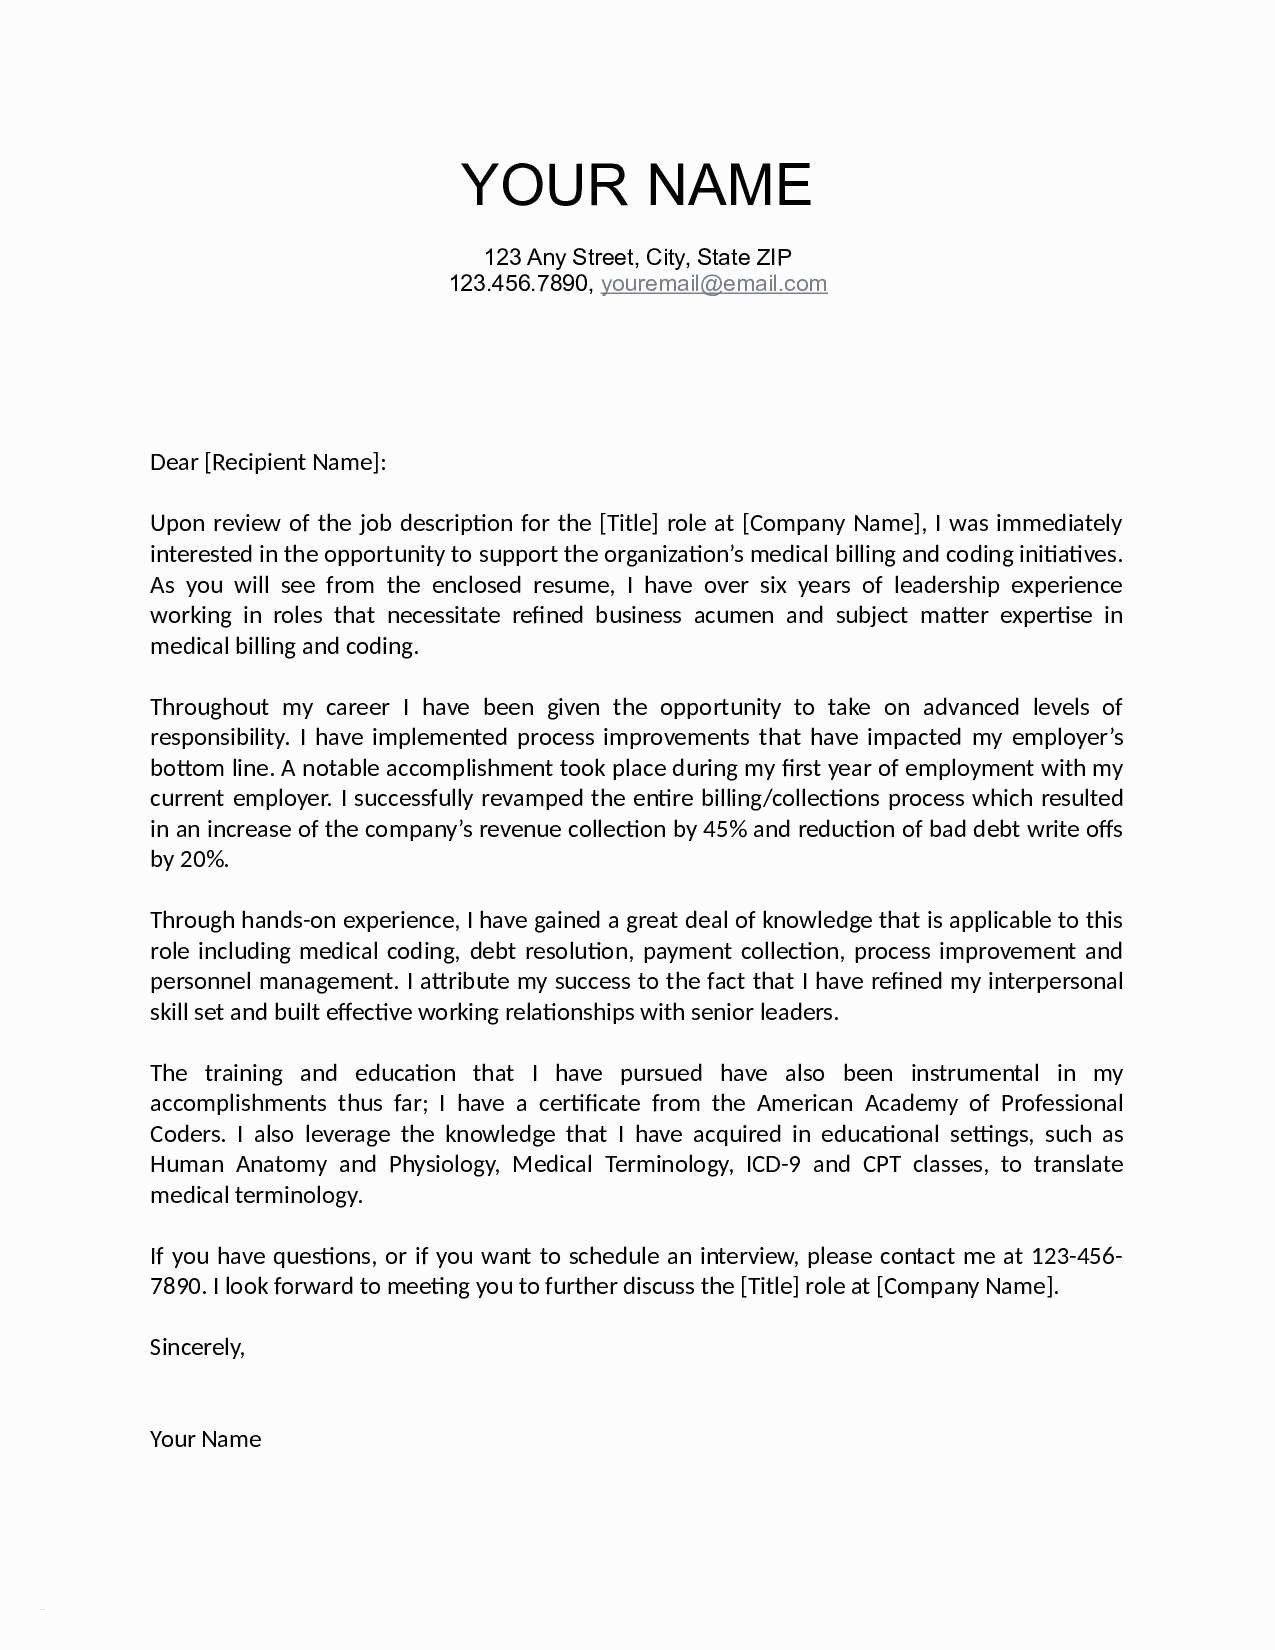 Thank You Letter Business Template - New Thank You Letter Business Template Tellmeladwp